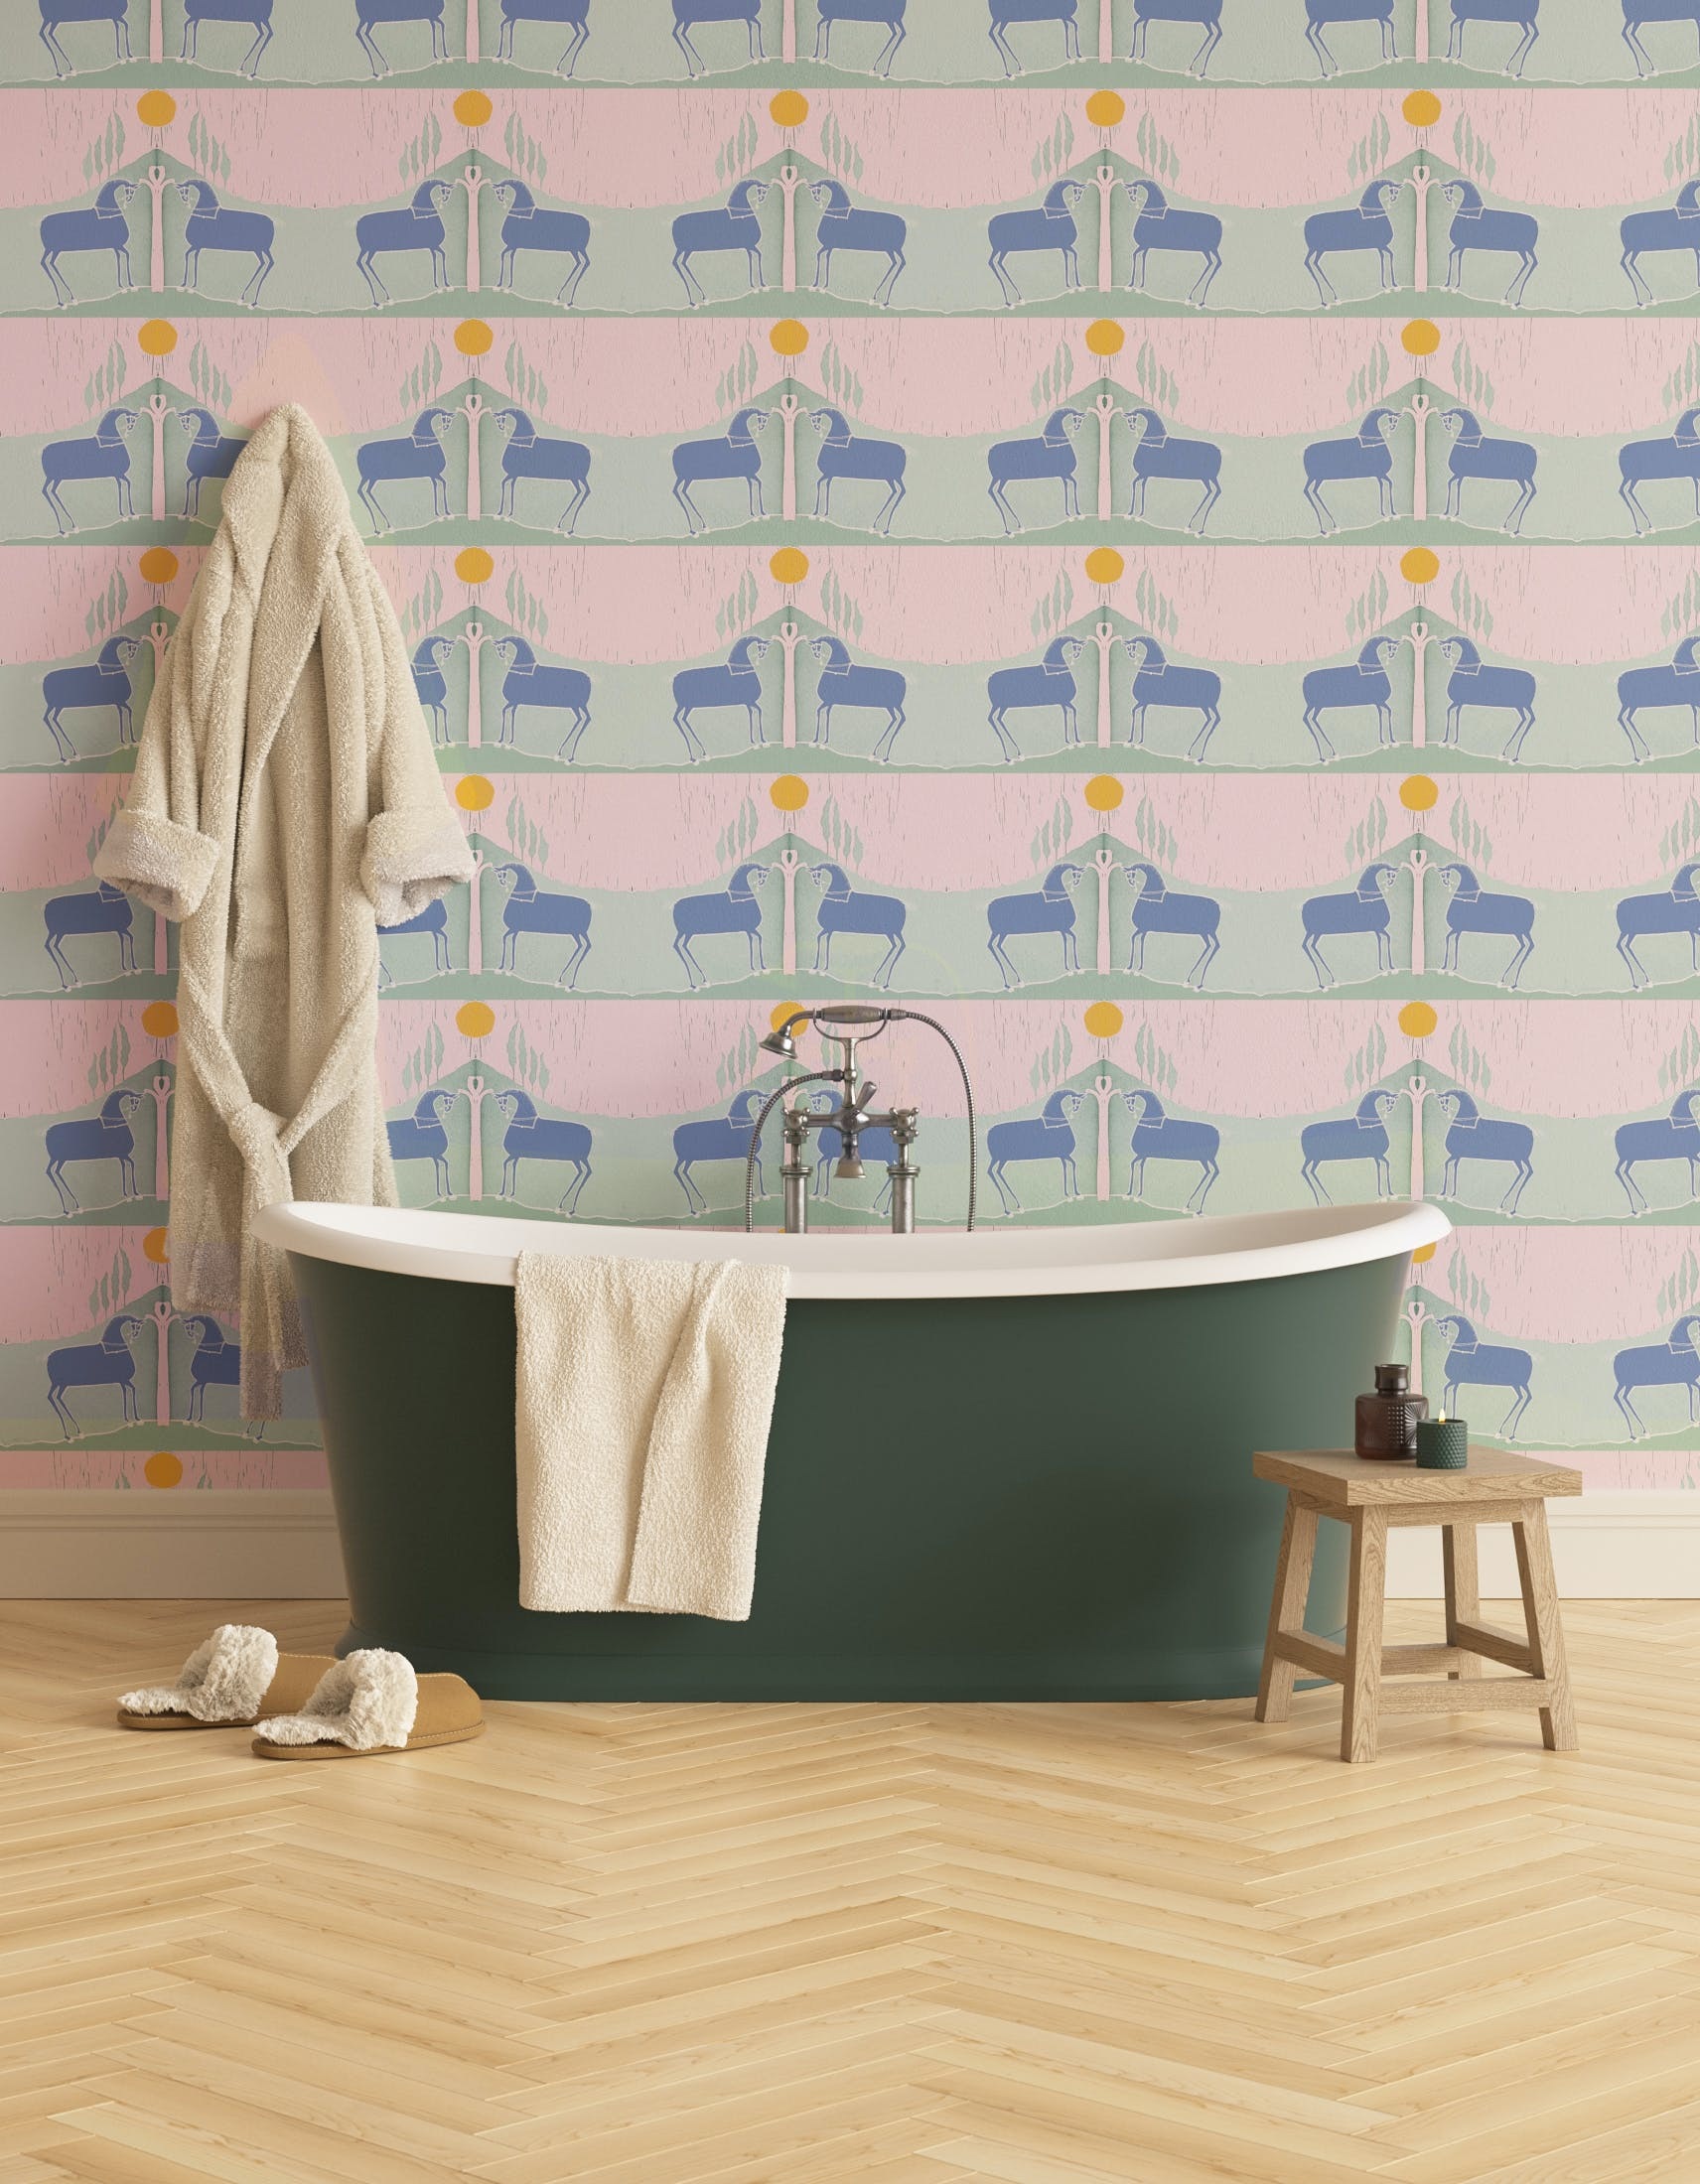 Bathroom decorated with Lick x Annika Reed Western 03 pink and mint green animal wallpaper